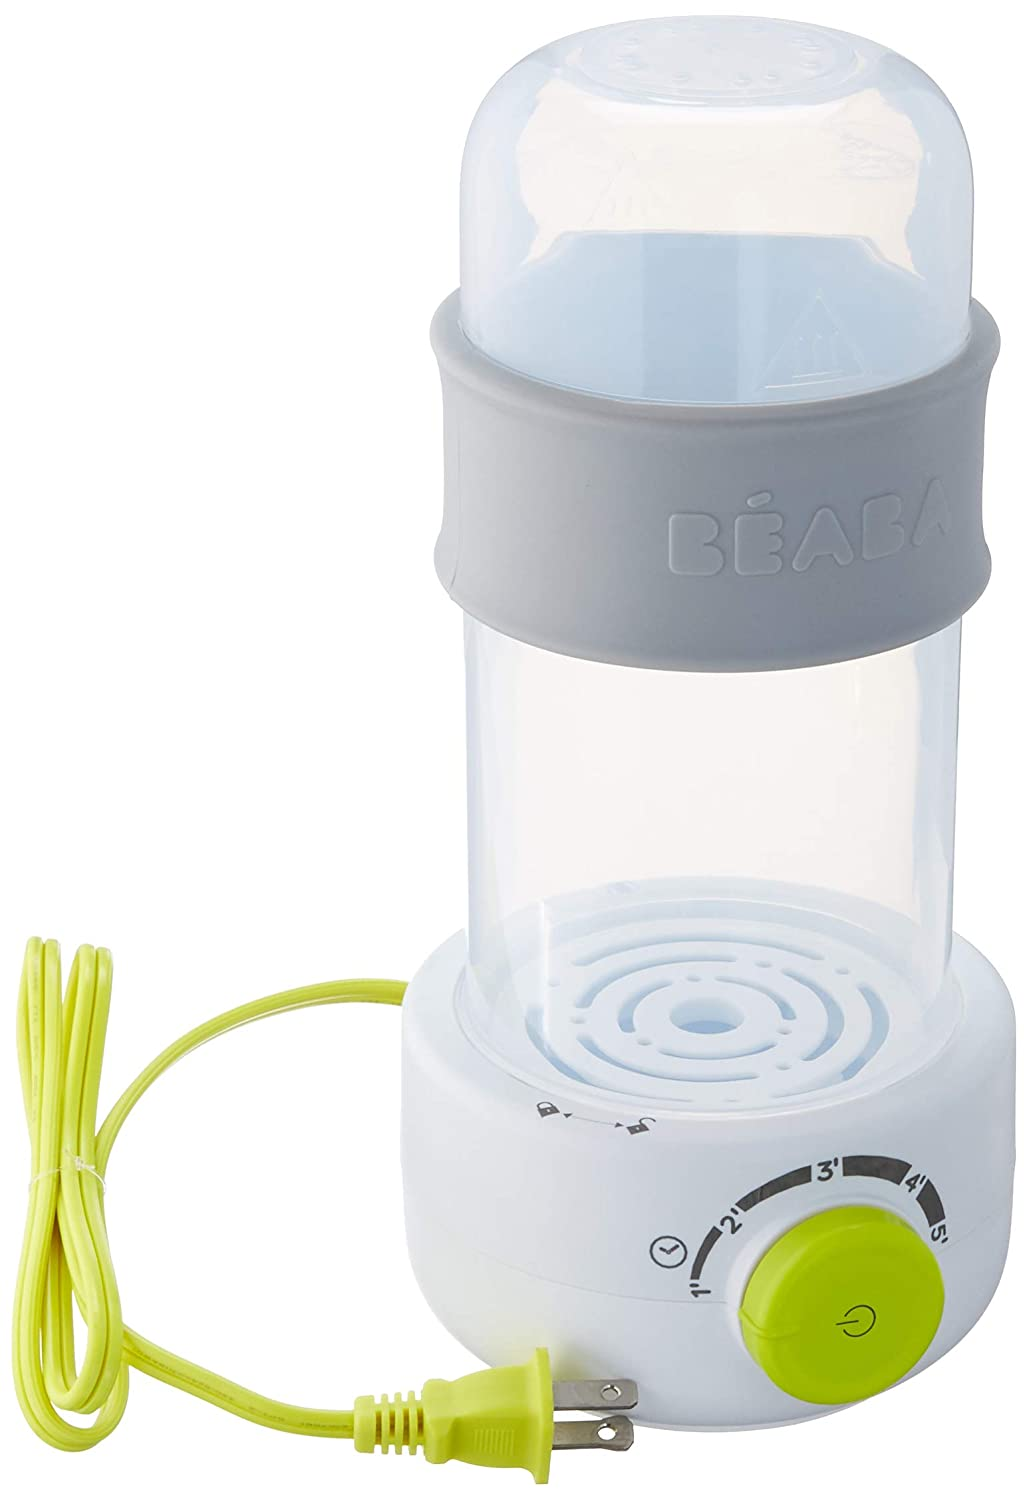 BEABA Quick Baby Bottle Warmer and Sterilizer